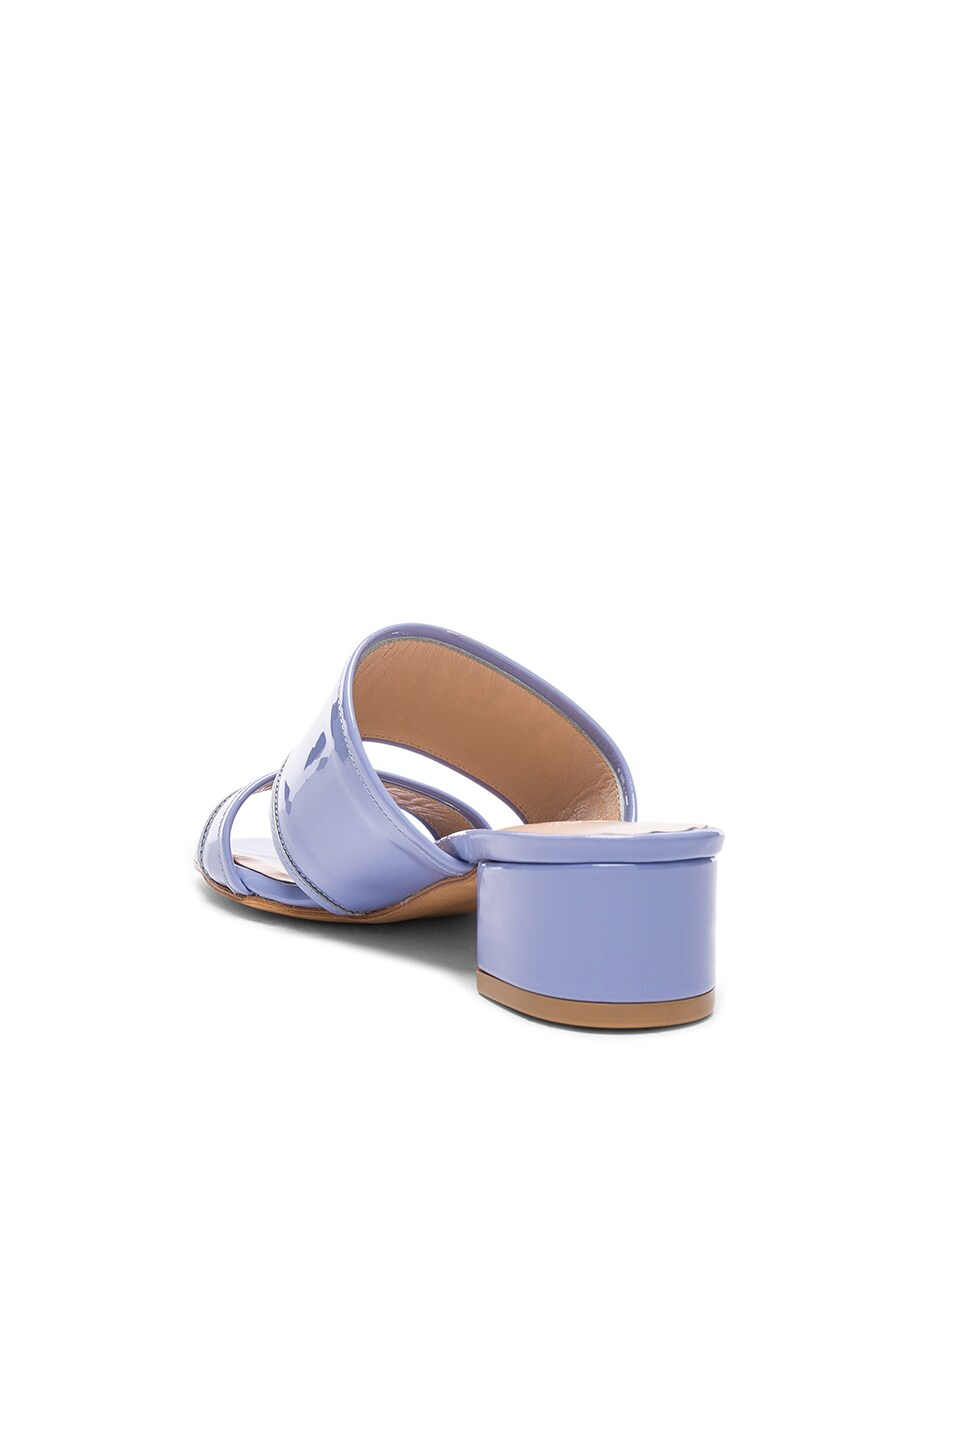 Image 3 of Maryam Nassir Zadeh Patent Leather Martina Slide Sandals in Periwinkle Patent